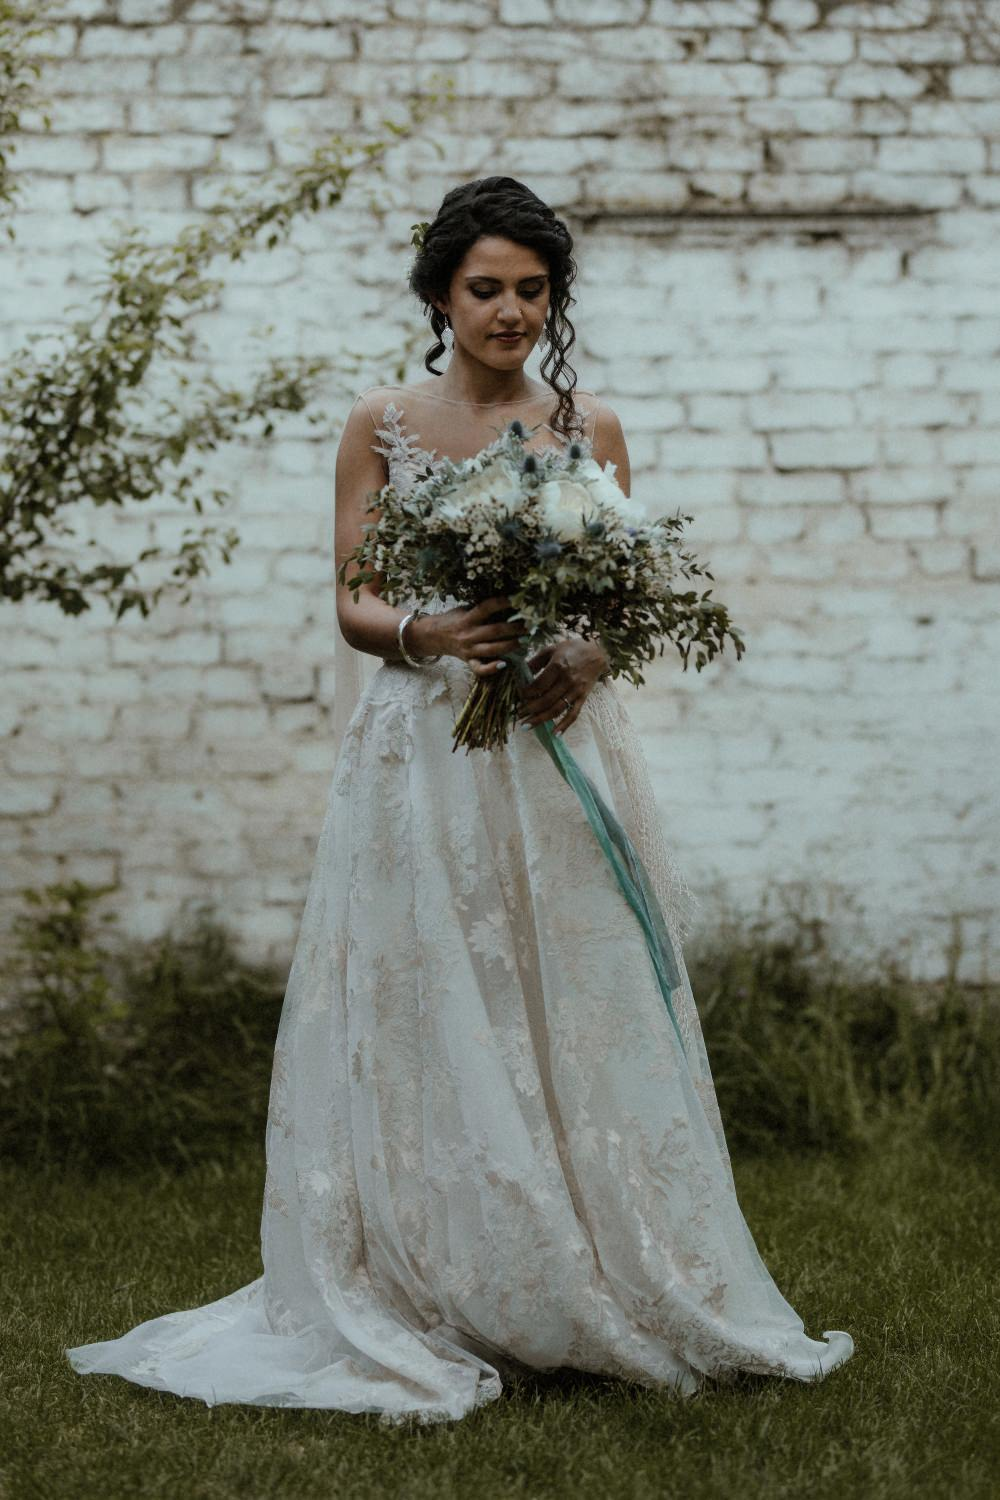 Bouquet Flowers Thistle Peony Ribbon Bride Bridal Dress Gown Illusion Lace Cape Veil Gemy Maalouf Brunel Museum Wedding Olivia and Dan Photography